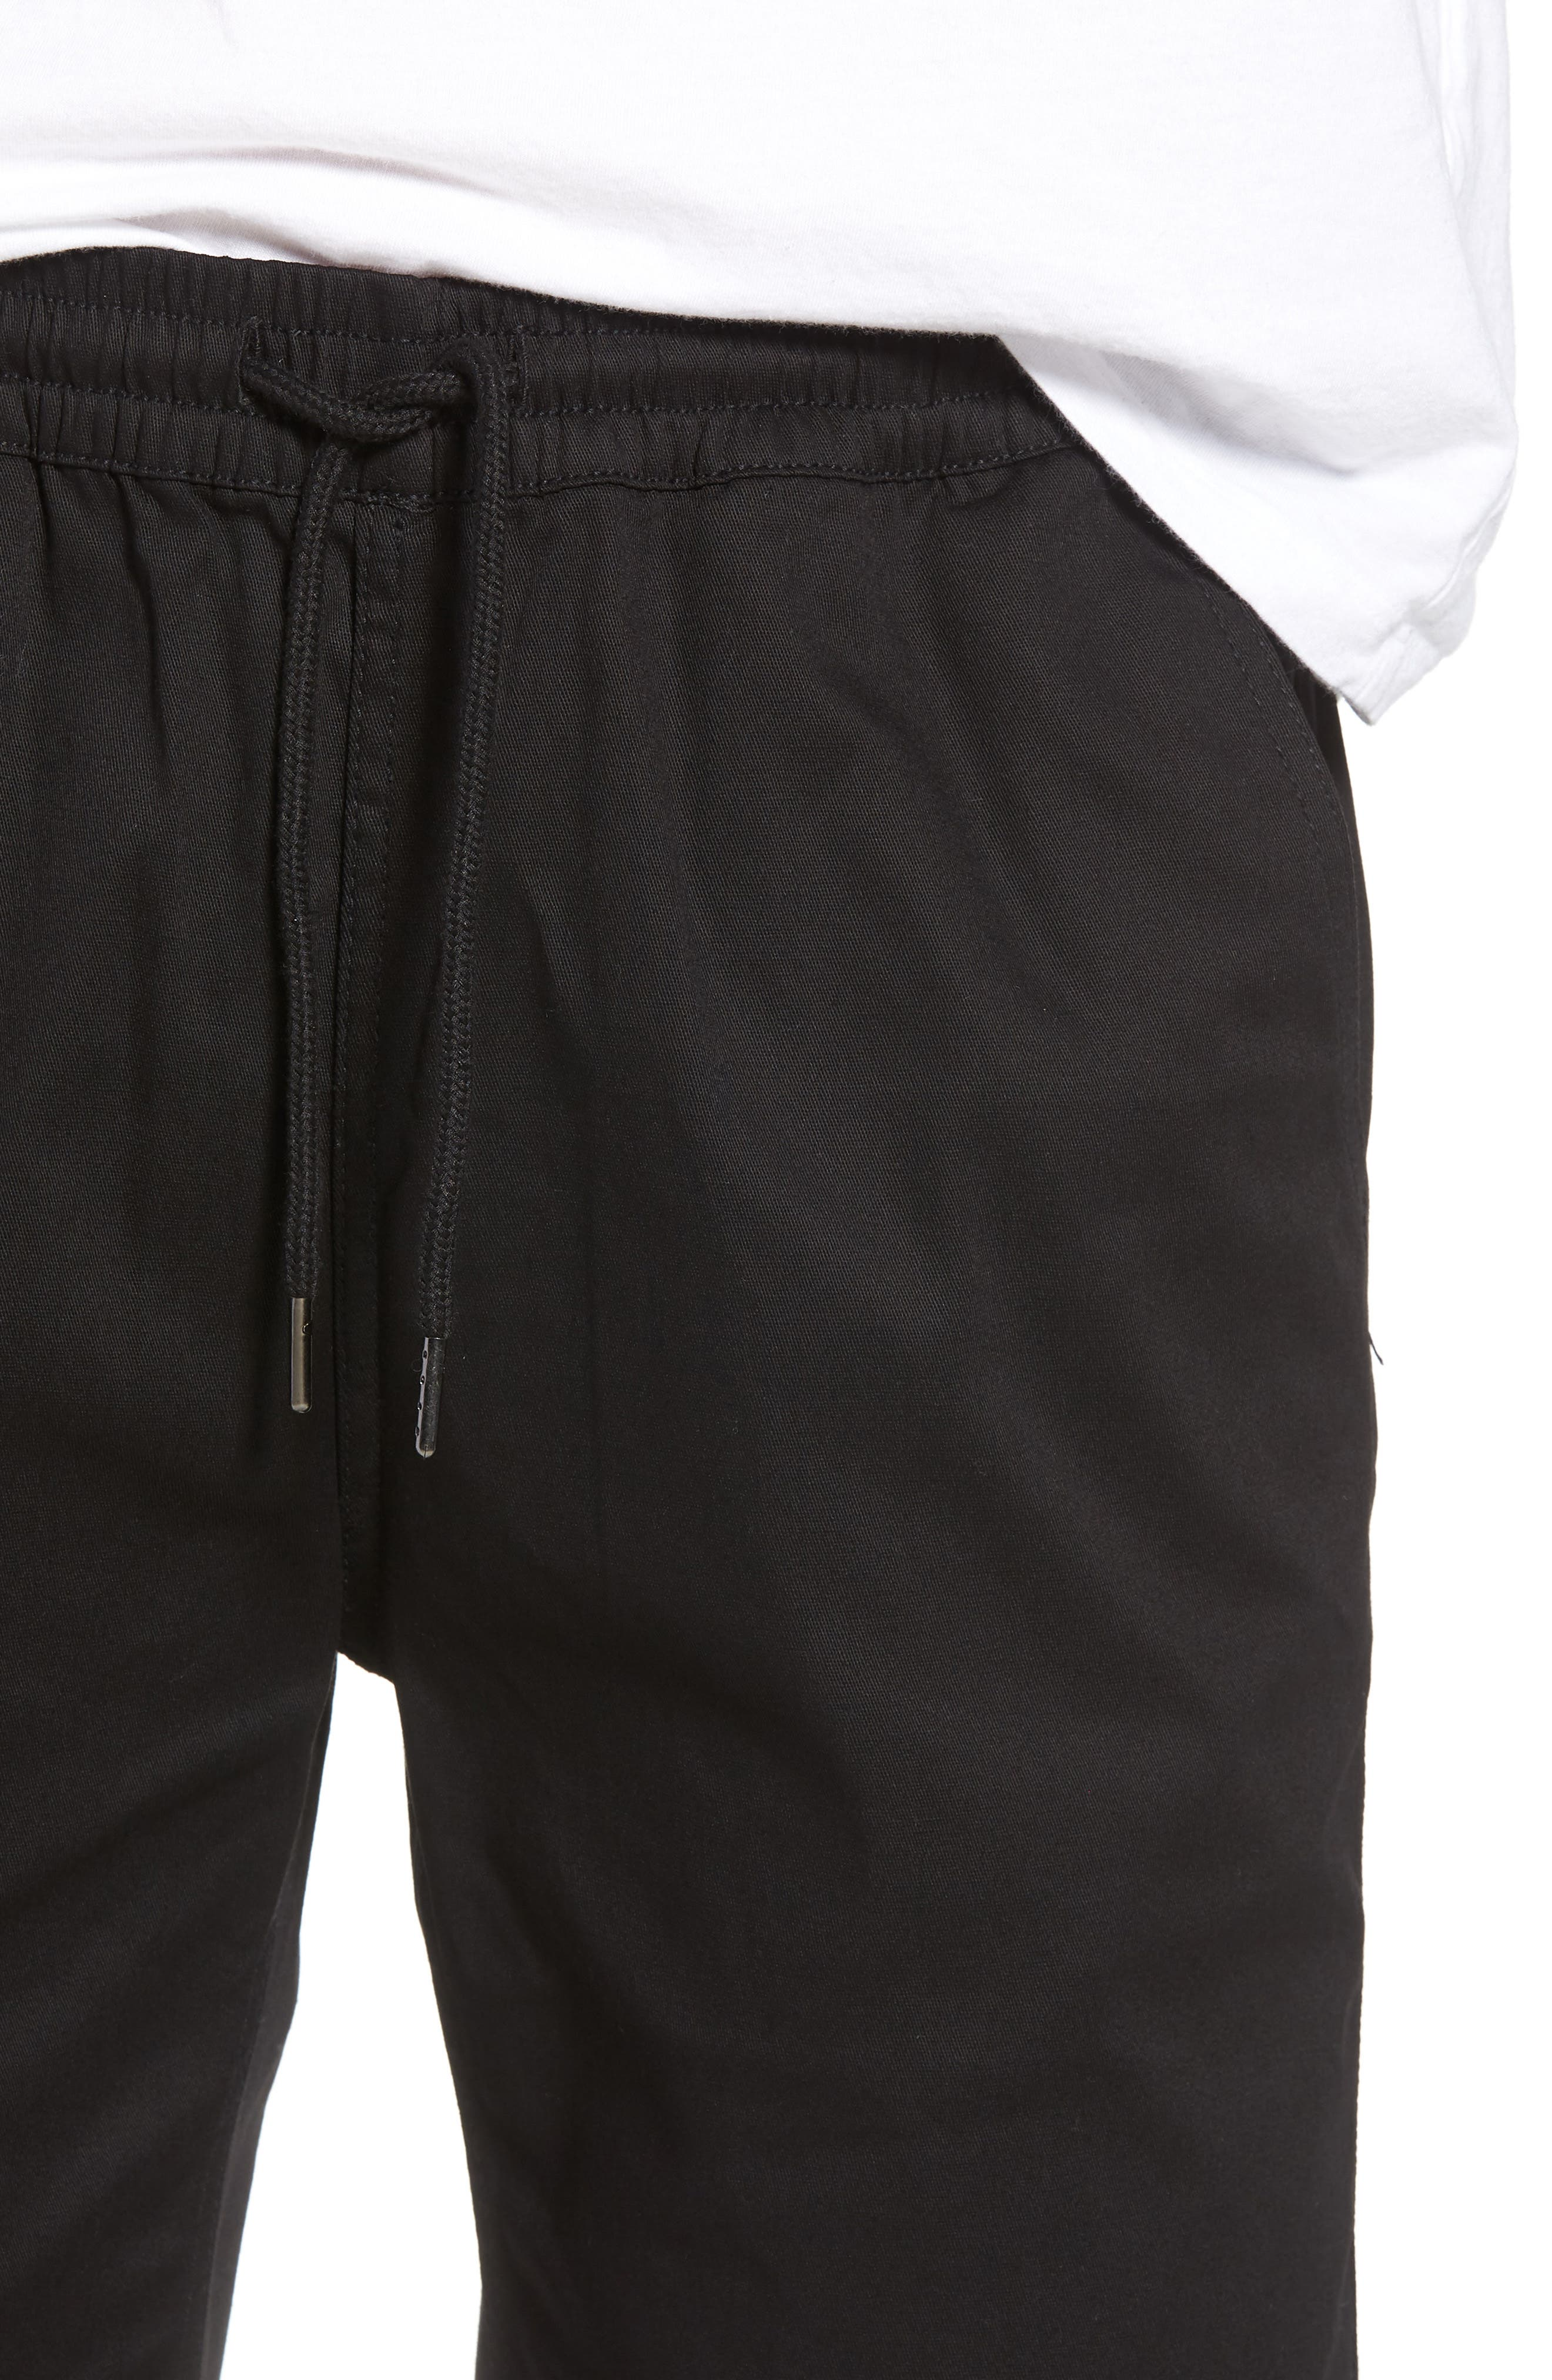 Runner Shorts,                             Alternate thumbnail 4, color,                             Black